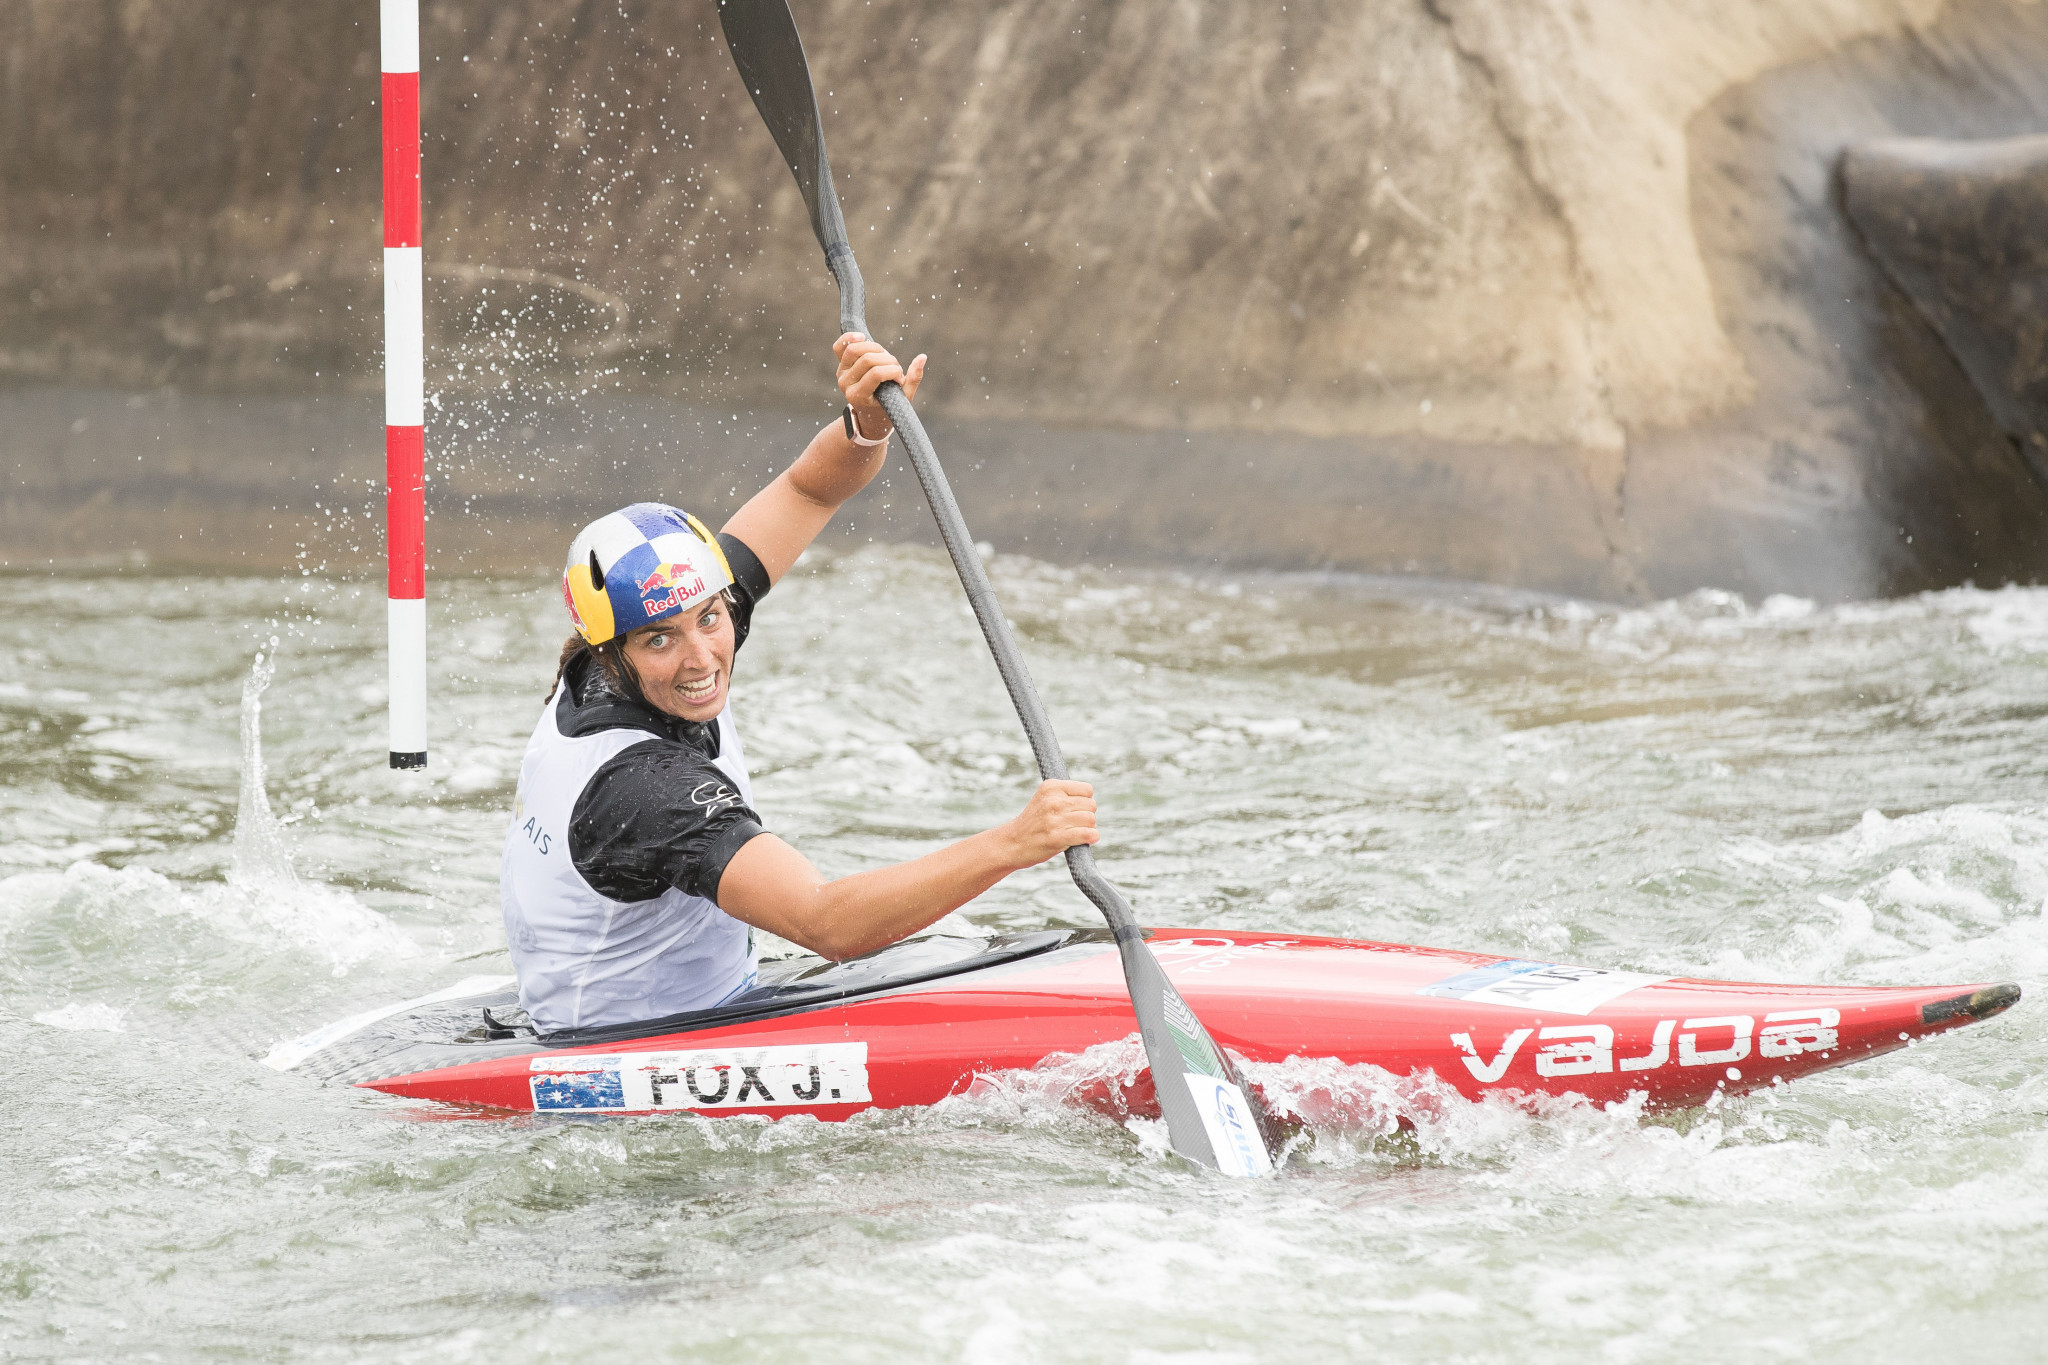 Fox named 2018 sportswoman of the year at World Paddle Awards